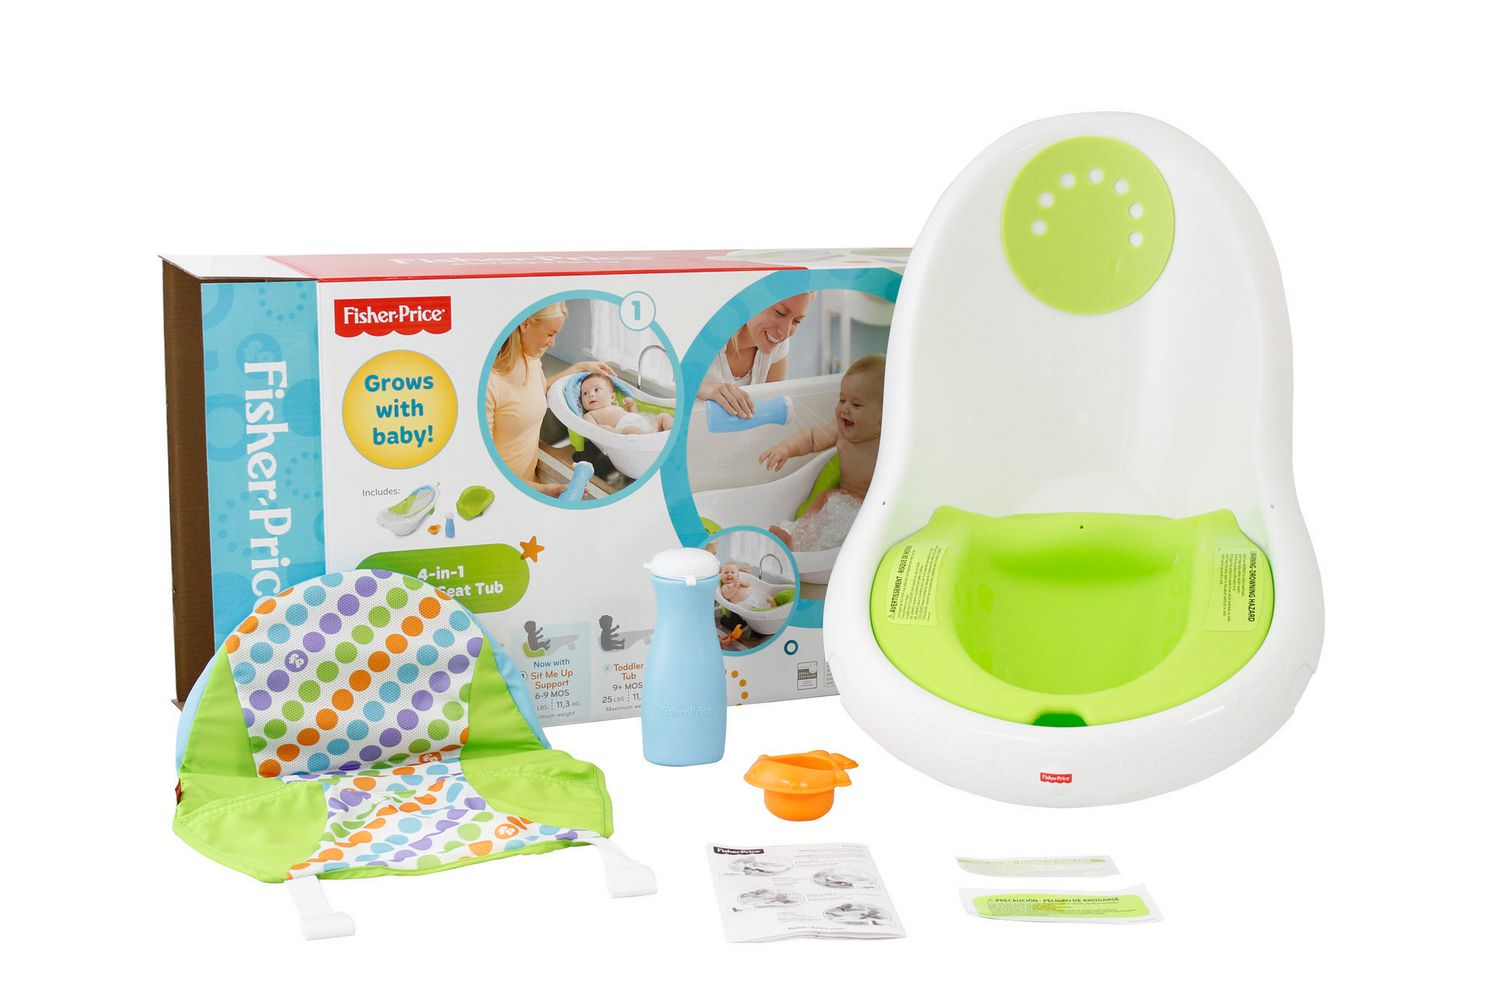 Mother's Helper Fisher-Price 4-in-1 Sling /'n Seat Bath Tub Baby Infant Toddler